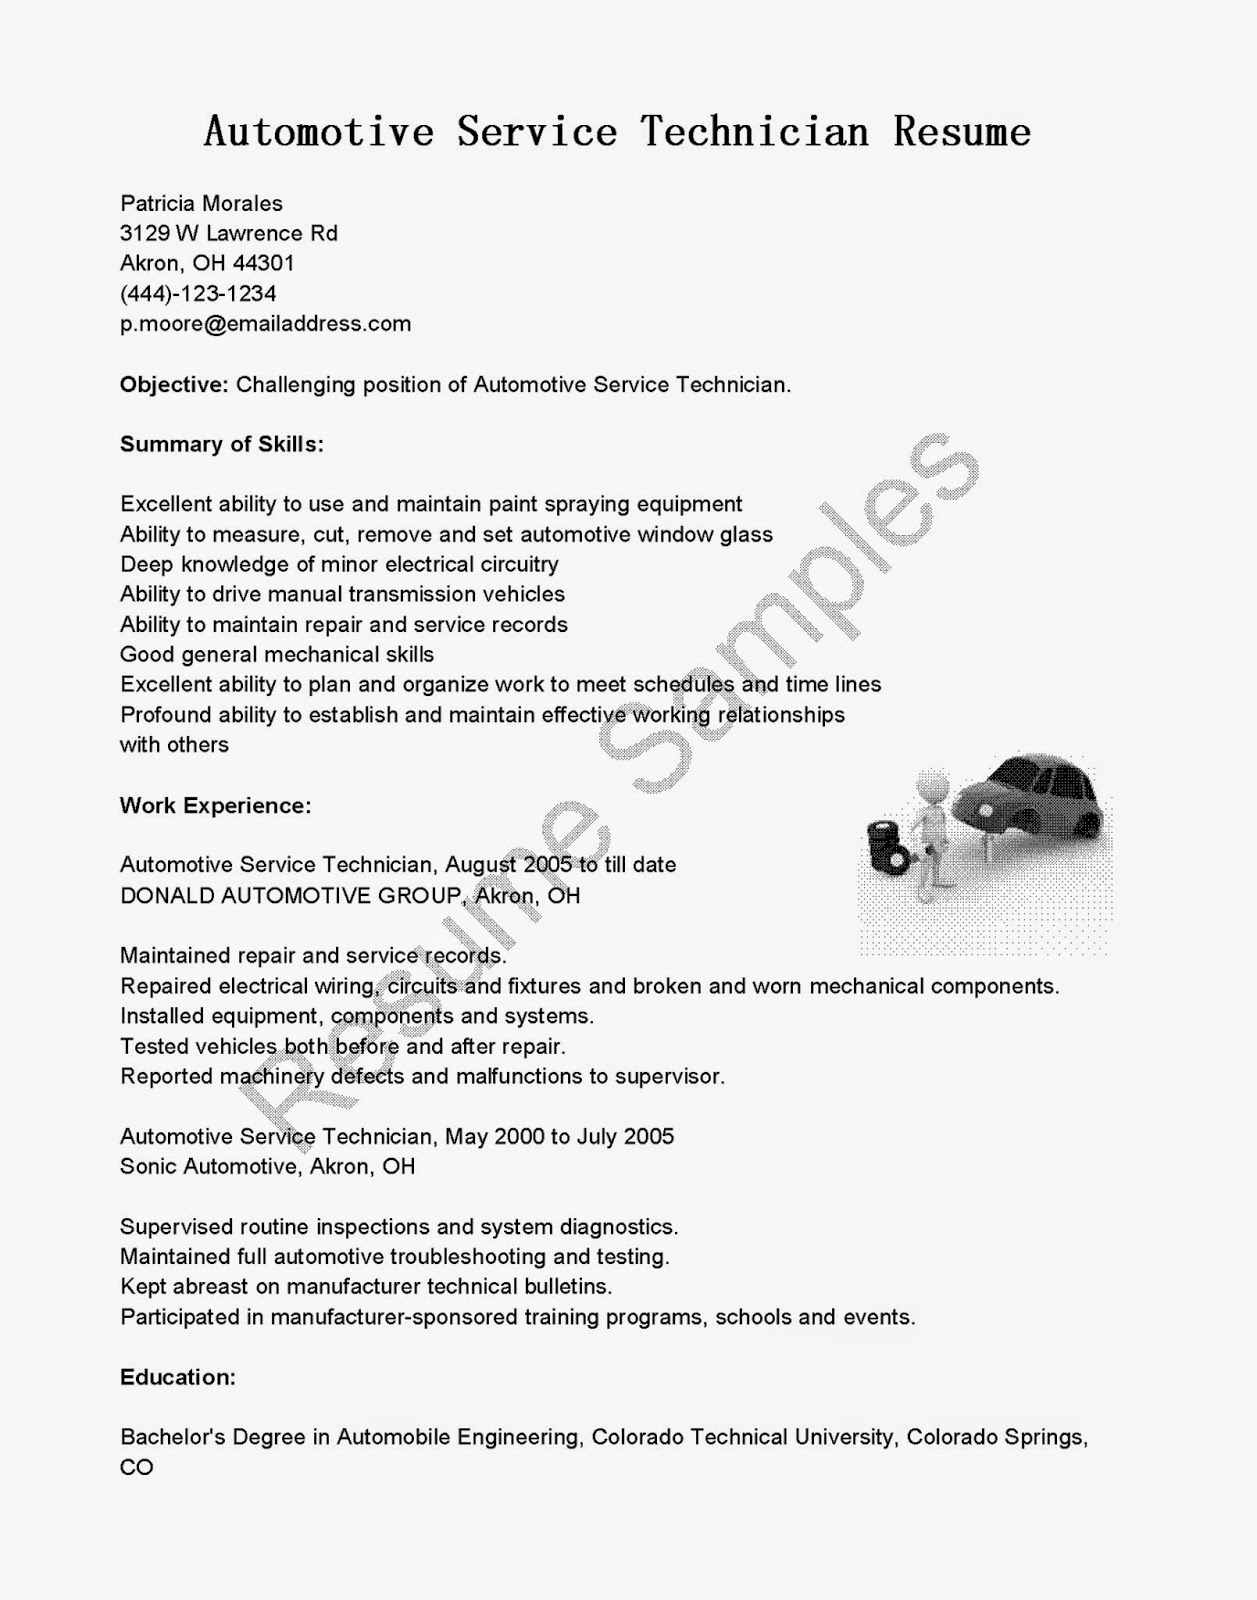 Resume Samples Automotive Service Technician Resume Sample